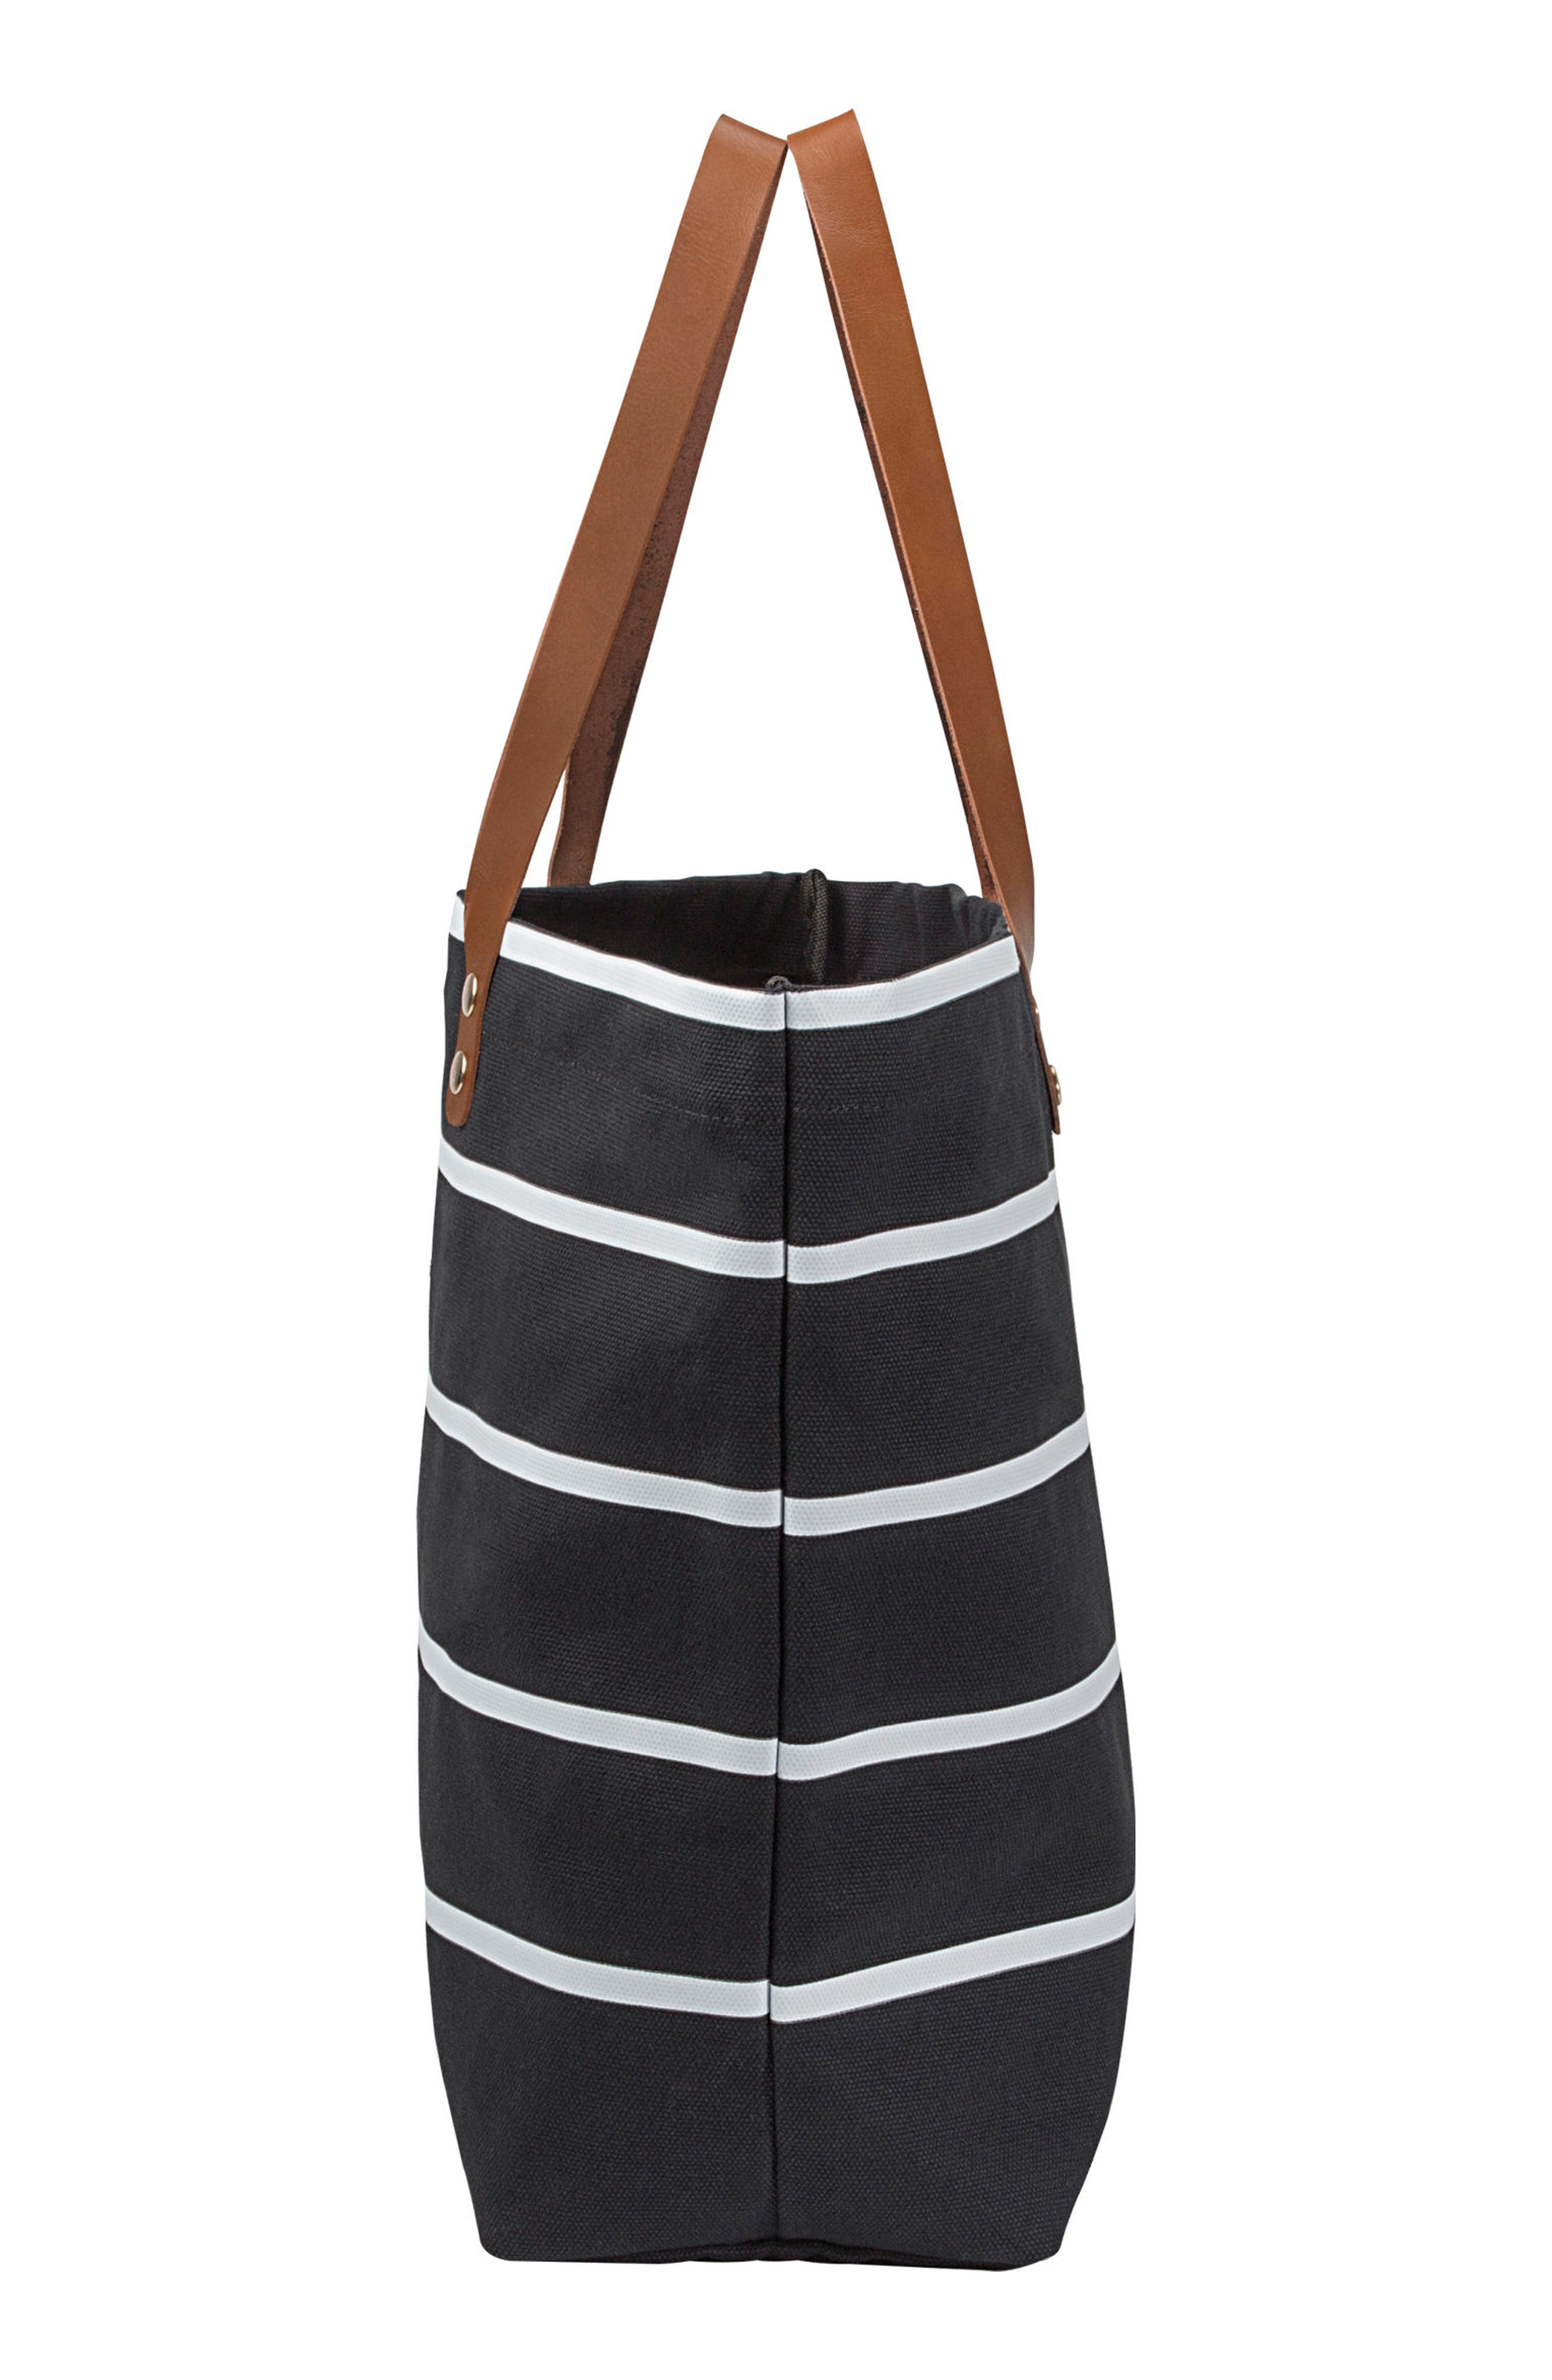 CATHY'S CONCEPTS, Monogram Large Canvas Tote, Alternate thumbnail 2, color, BLACK